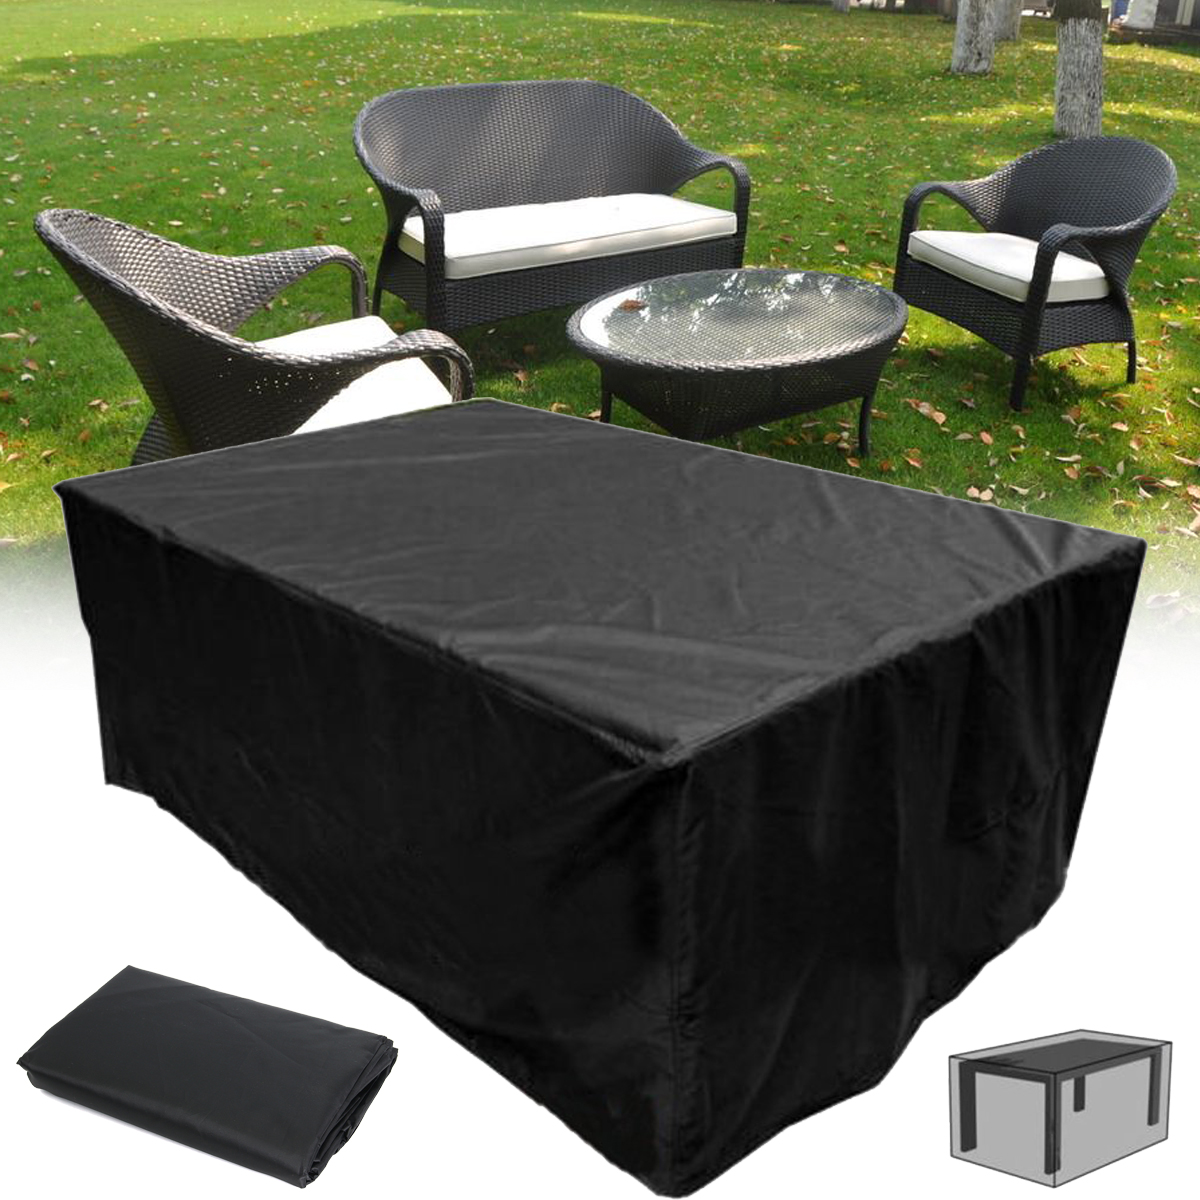 waterproof outdoor chair covers australia desk ebay uk 210x110x70cm garden patio furniture